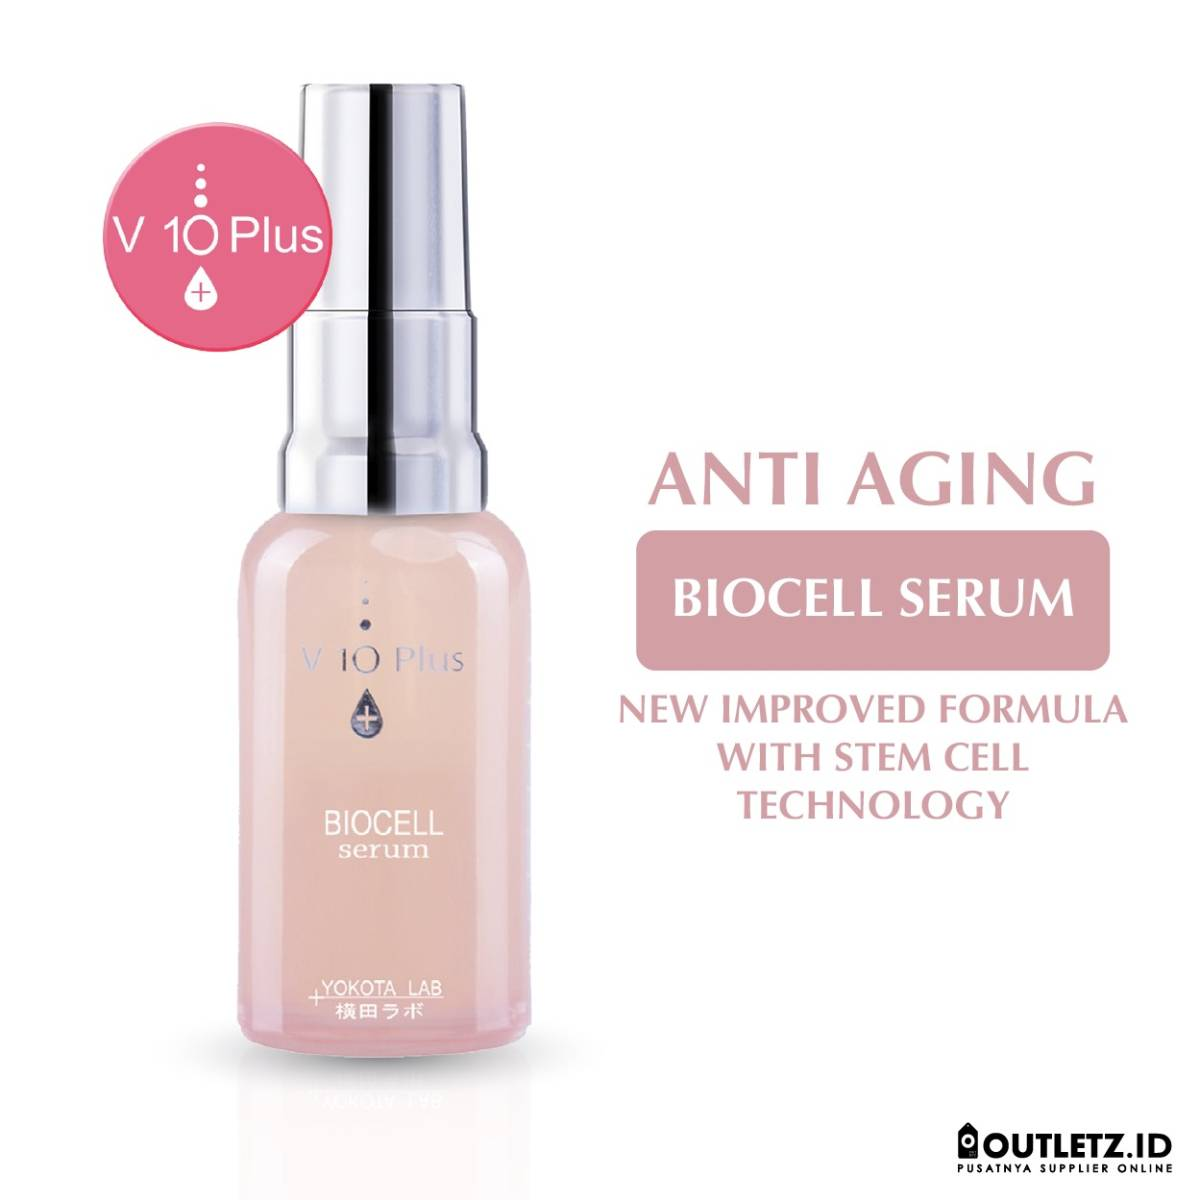 V10 Plus Biocell Serum